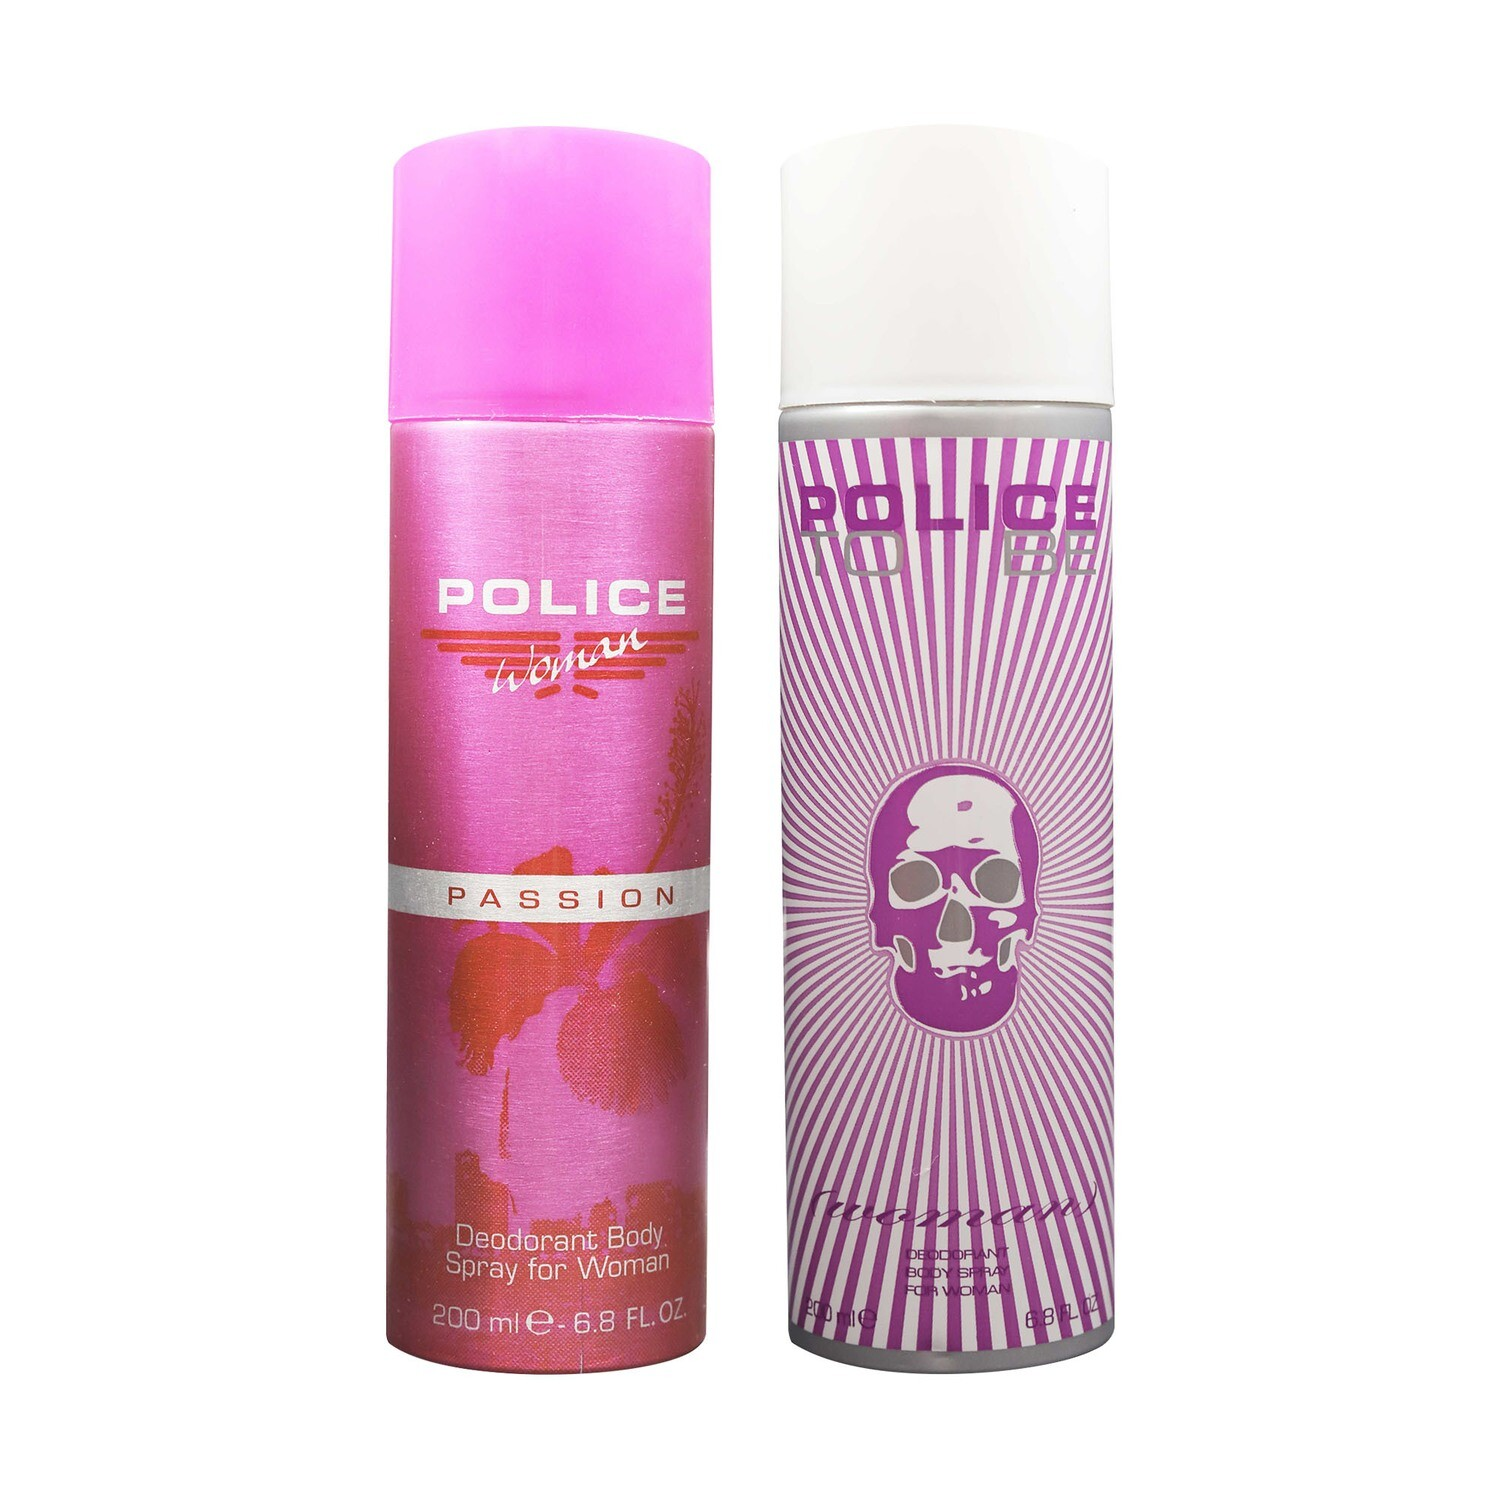 Police Passion + To Be Women Deodorant Spray - For Women 400ml